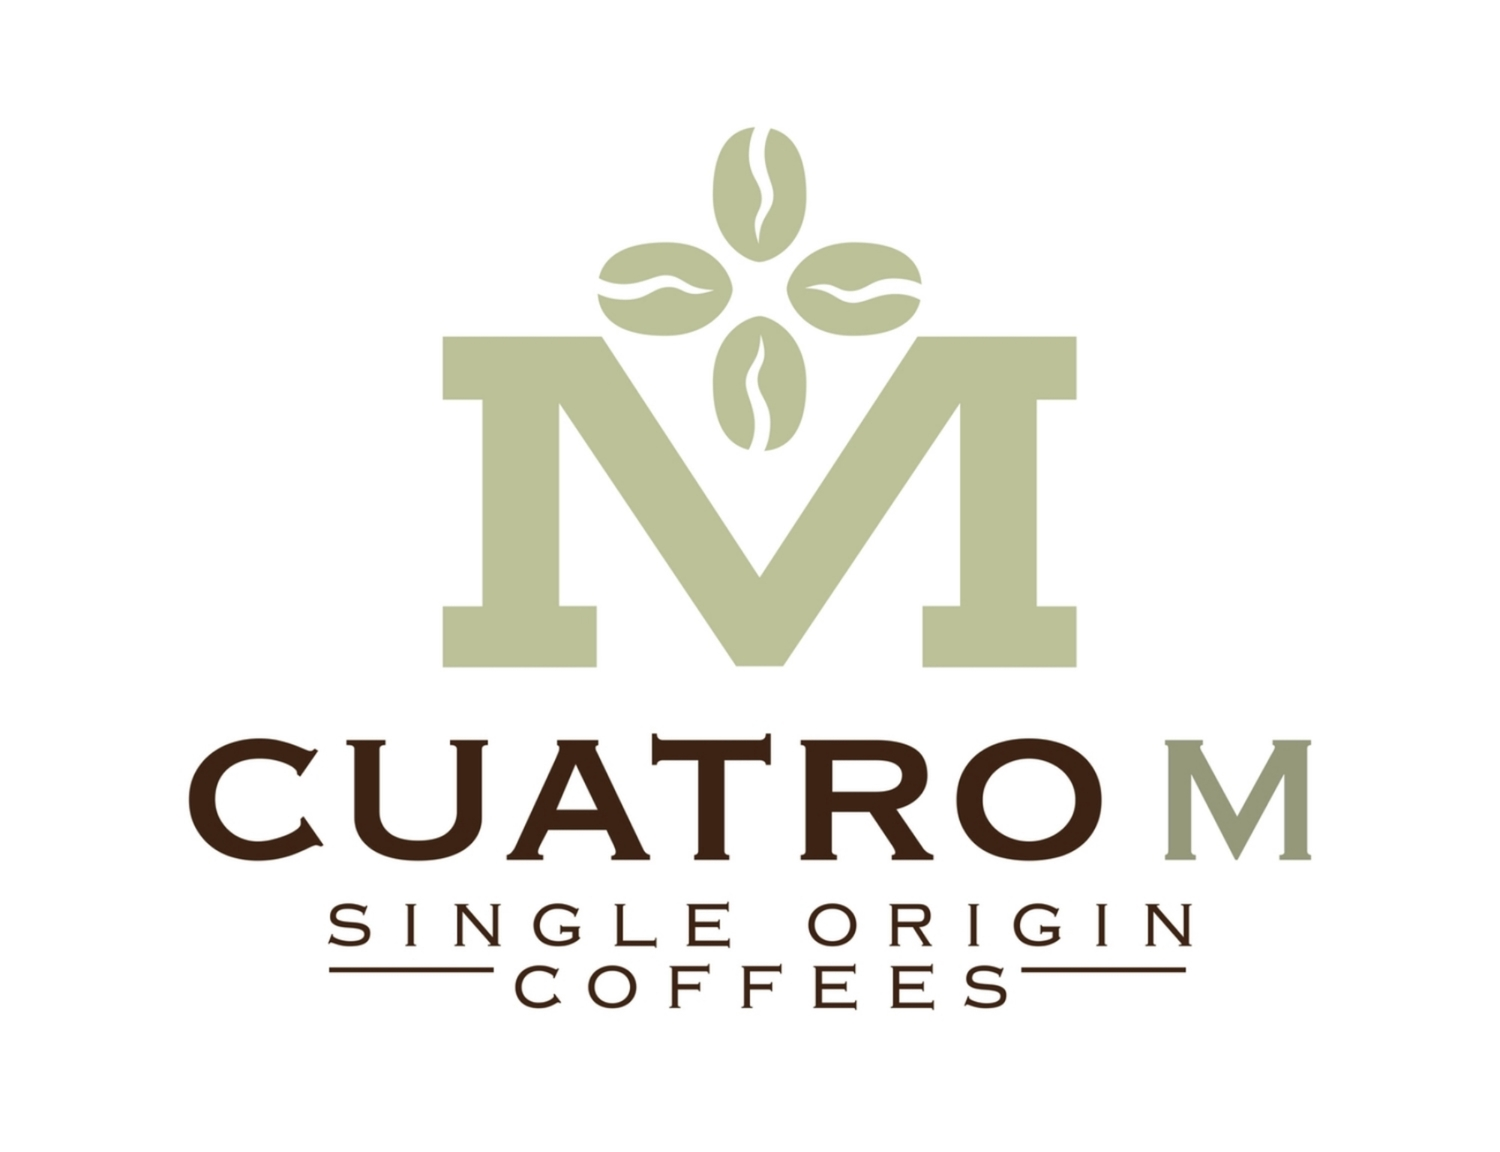 Cuatro M, Single Origin Coffees